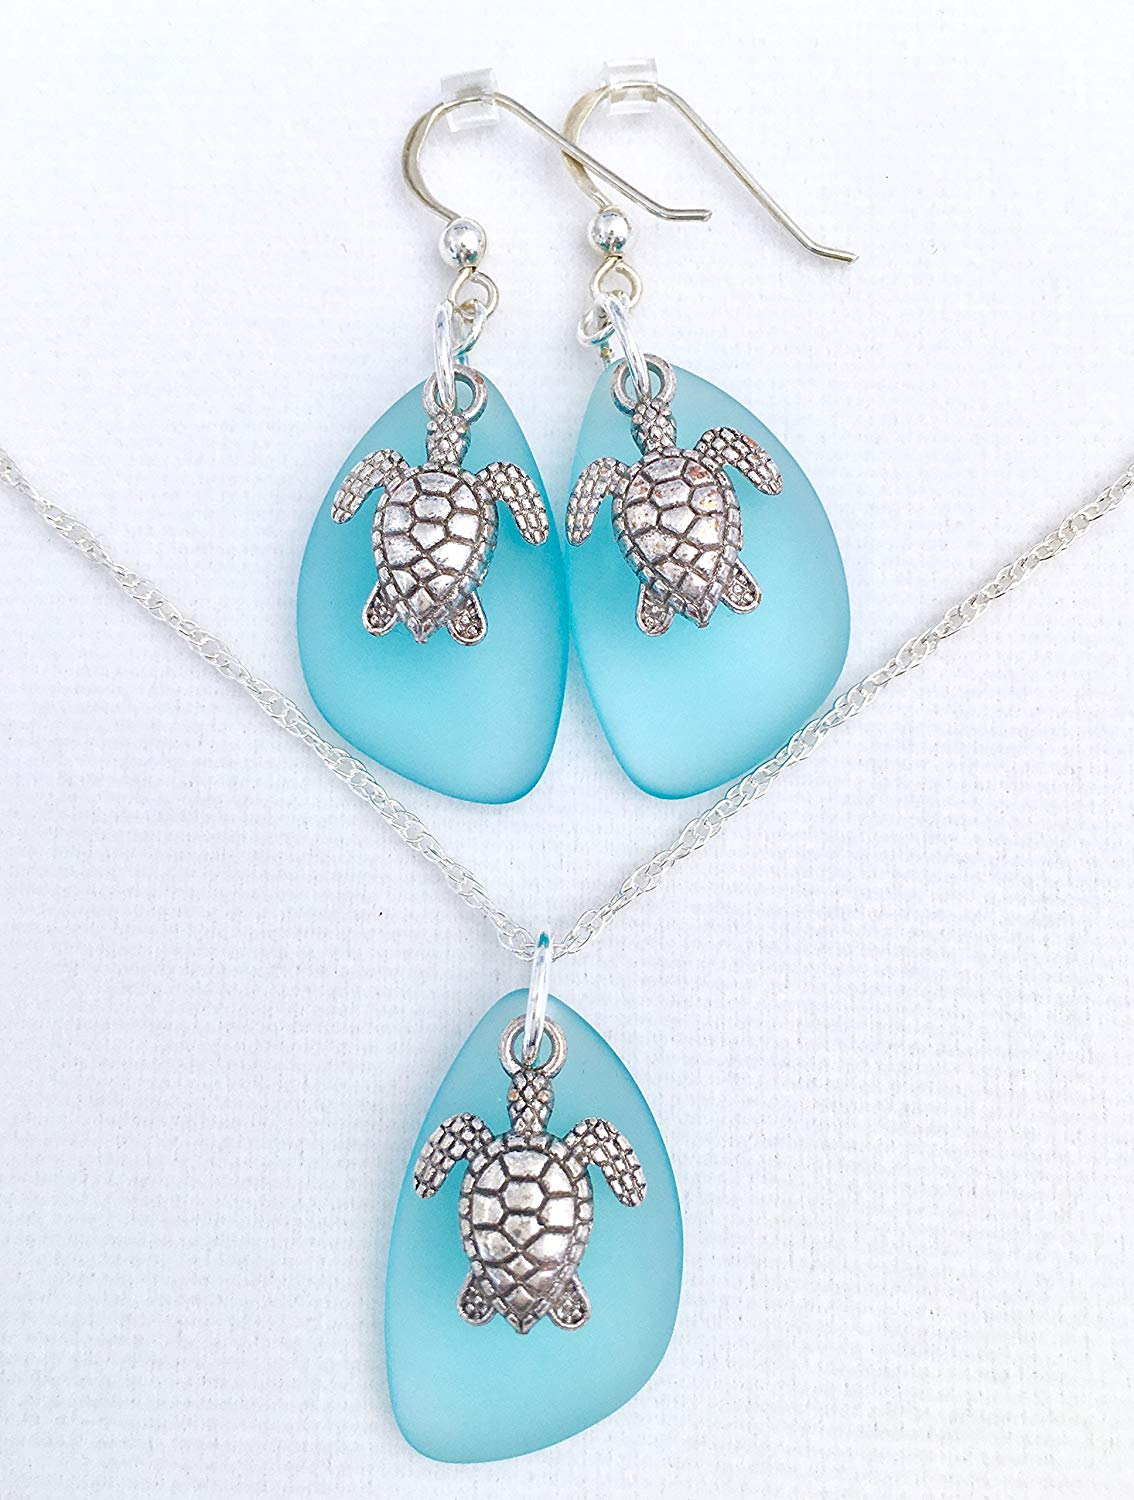 Handmade Sea Turtle Aqua Sea Glass Set, STERLING SILVER JEWELRY SET, Christmas Present for Her, Jewelry Set, Sea Glass Earrings, Aqua Jewelry, Gifts for her, Dangle Earrings